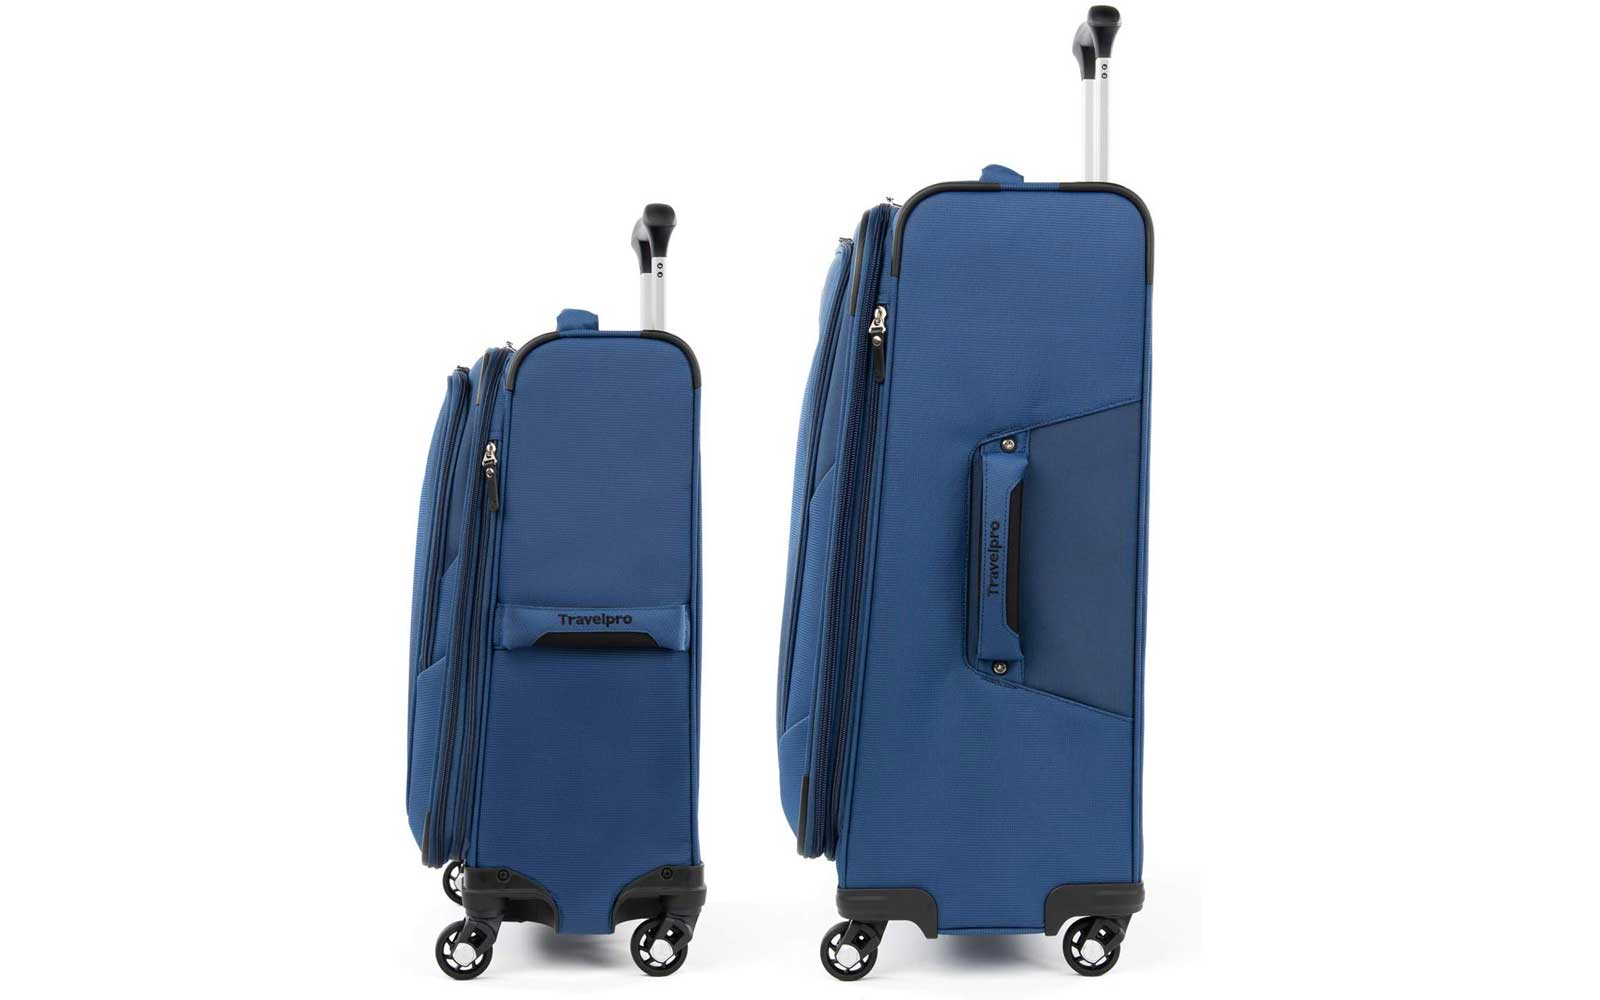 Blue Travelpro Softside Luggage Set Side View